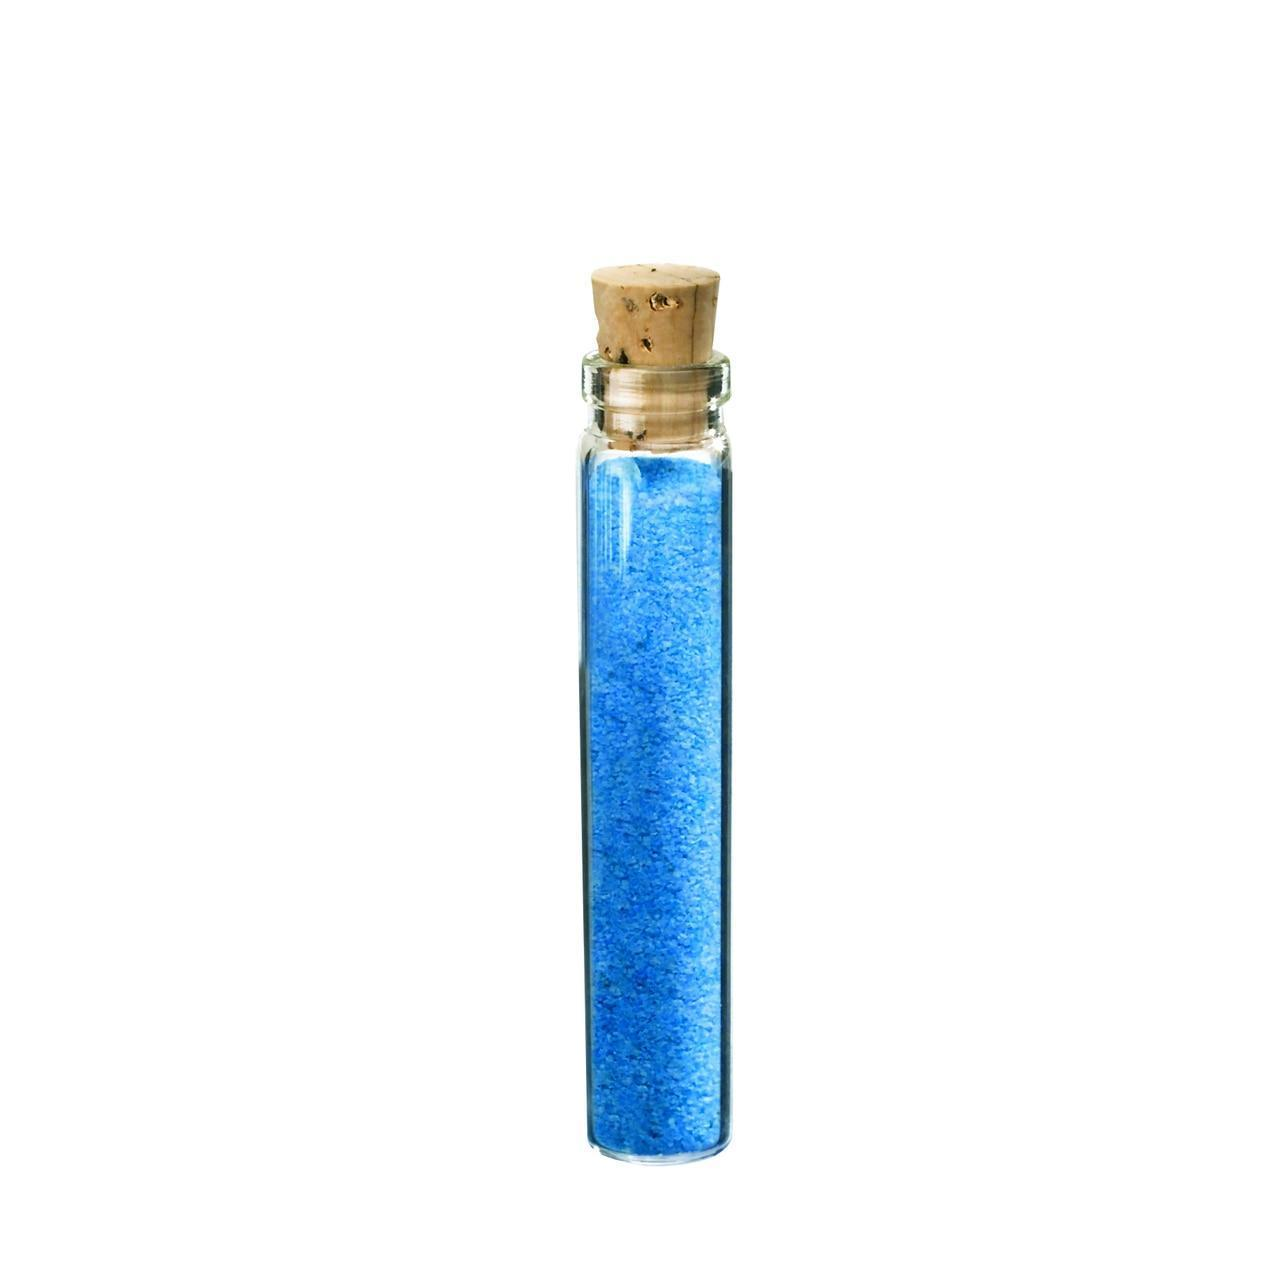 Cheap Aromatherapy & Essential Oils Containers Glass Corked Vials v4510B01 for sale